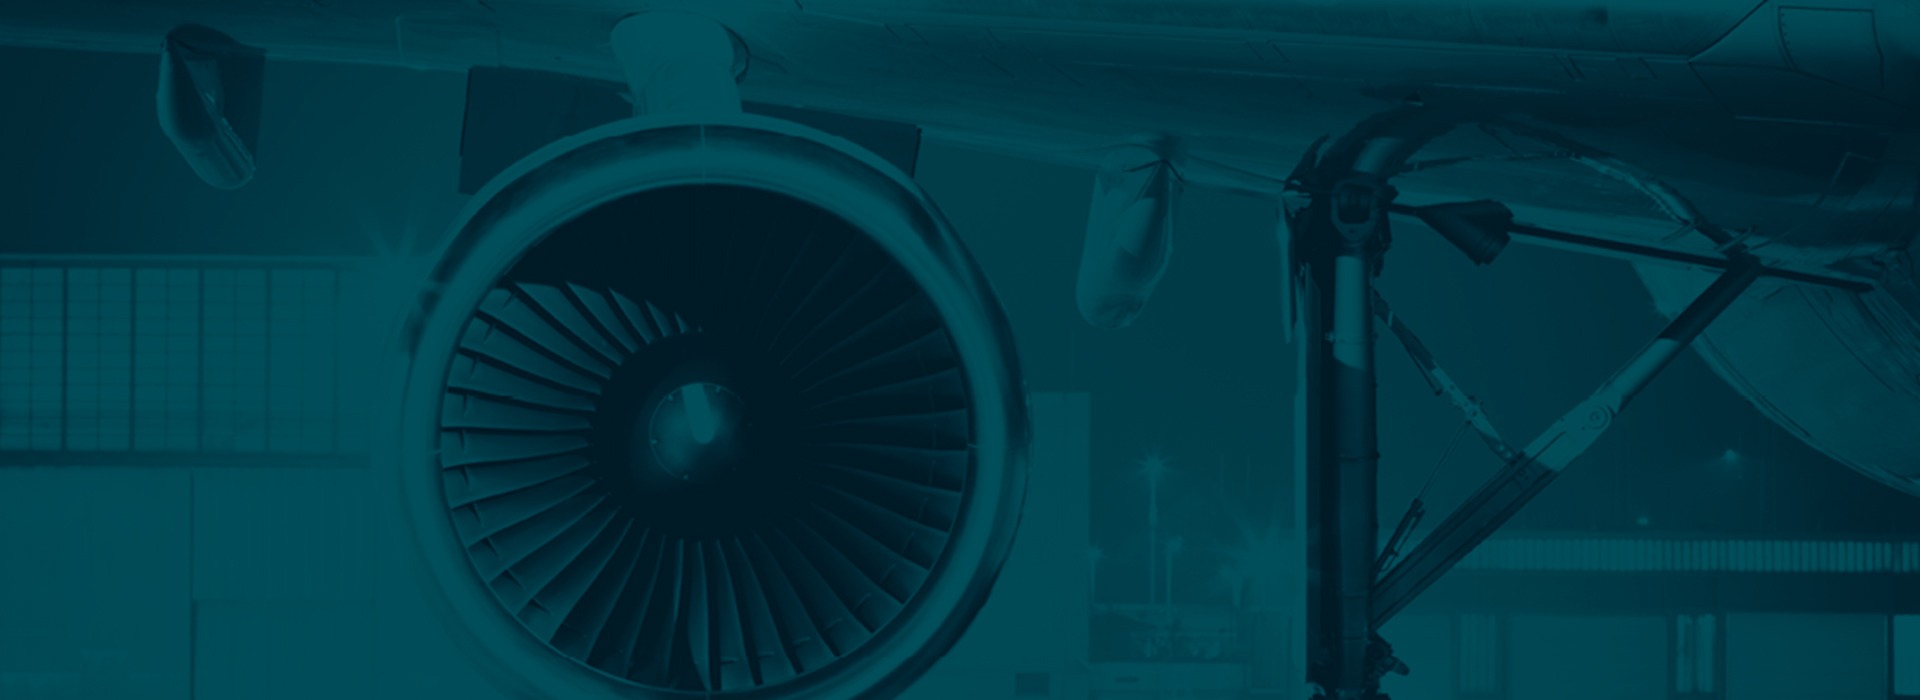 Aerospace industry banner